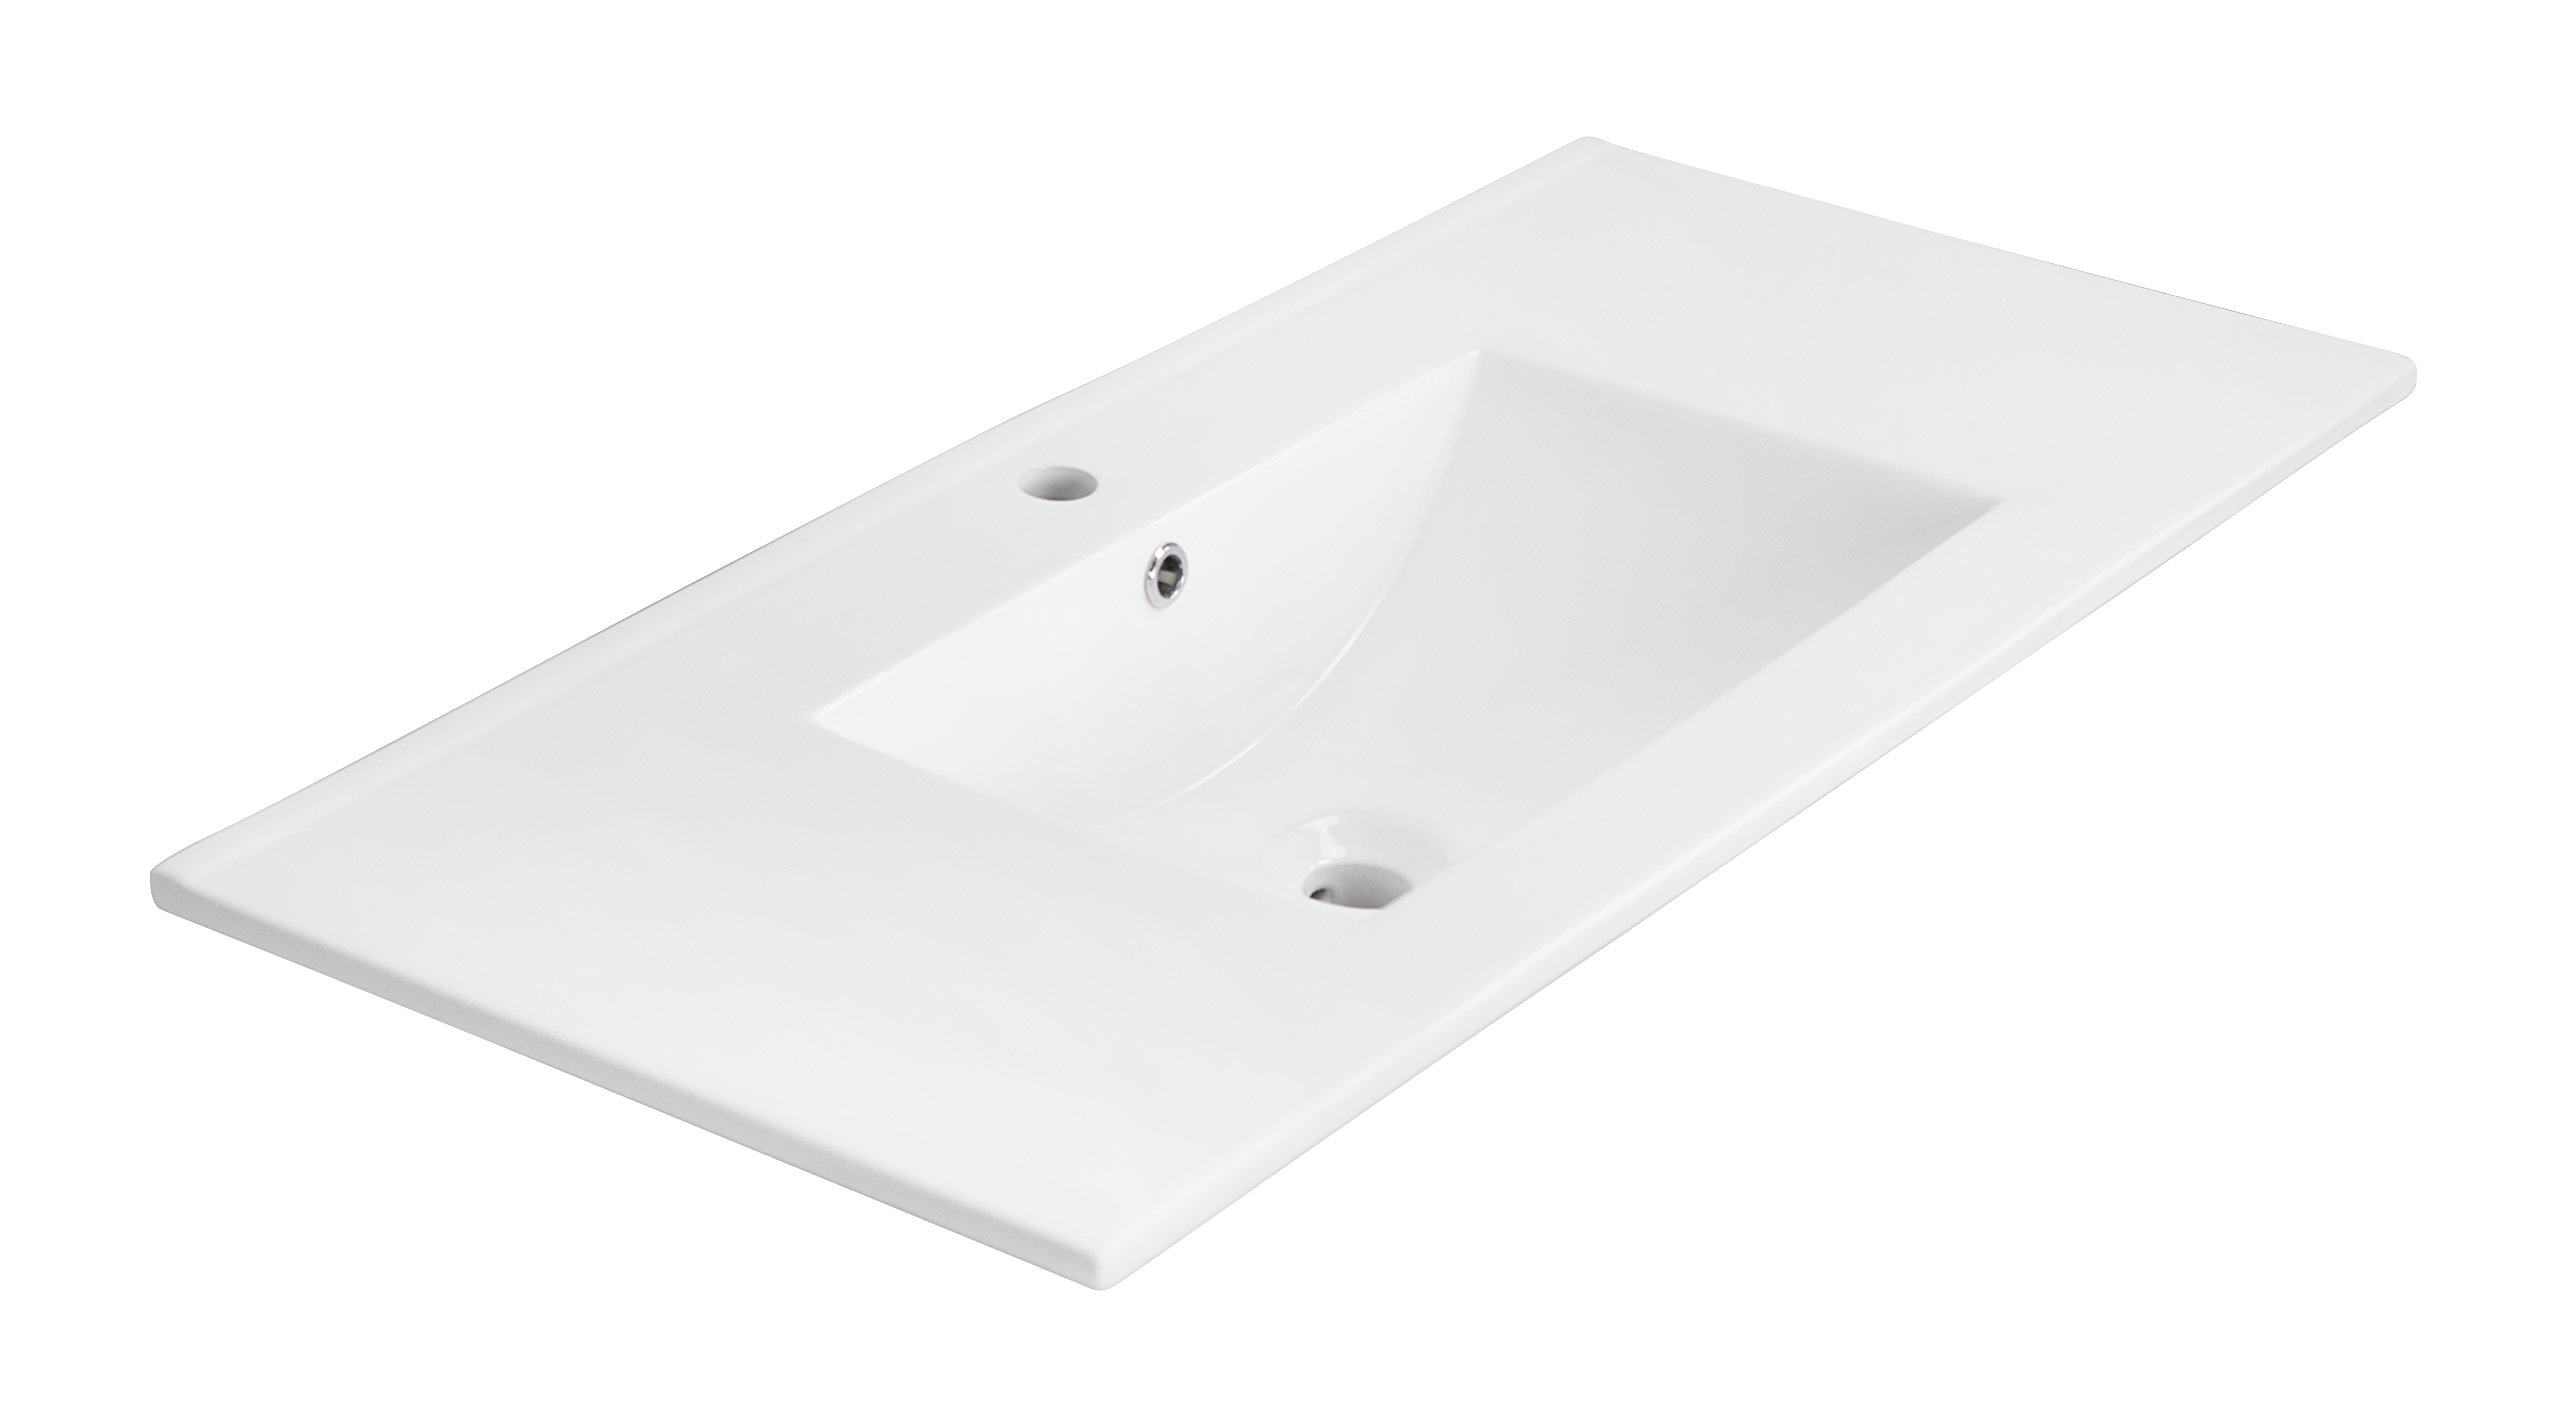 American Imaginations 659   36-Inch  X 18-Inch  White Ceramic Top with Single Hole by American Imaginations